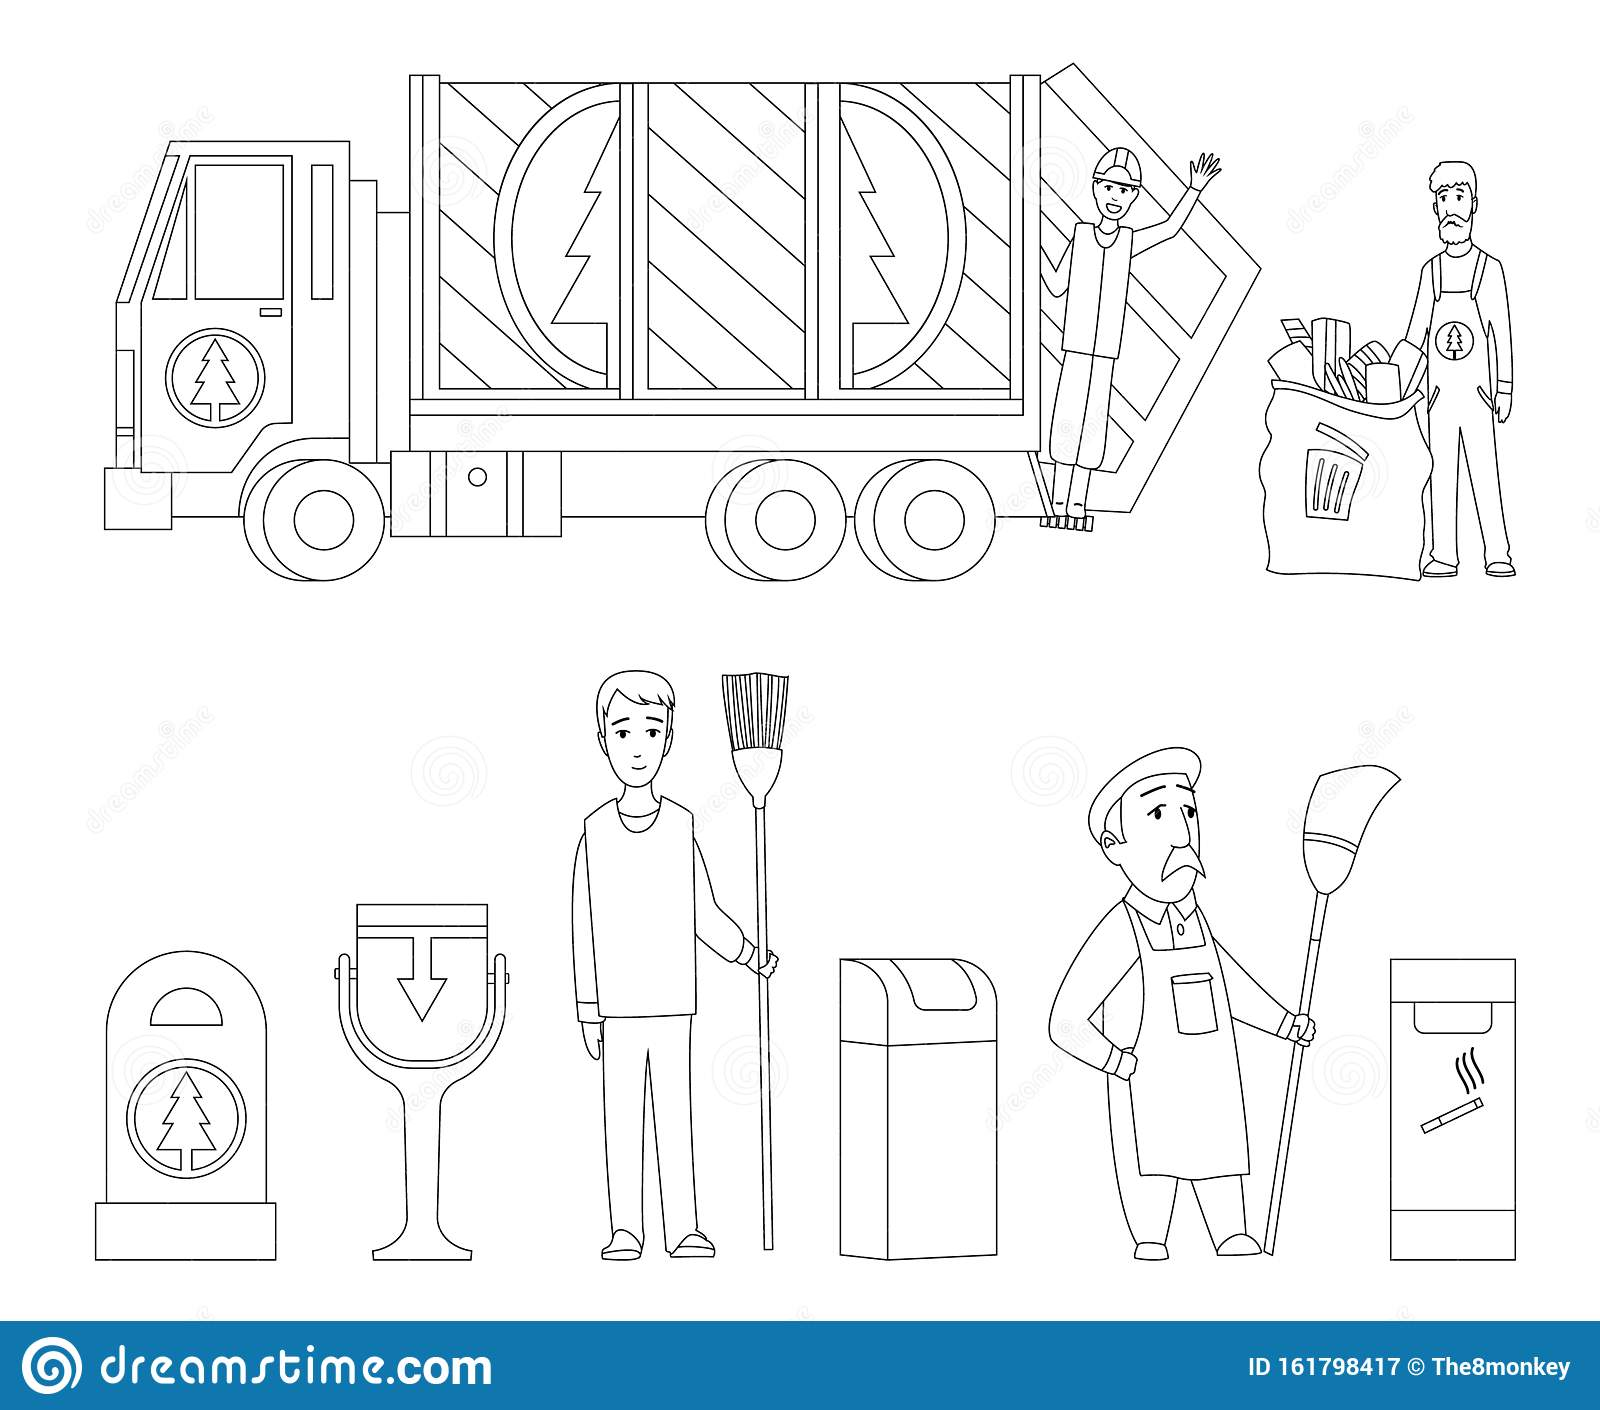 Garbage Truck Coloring Page | Online Coloring | 1410x1600